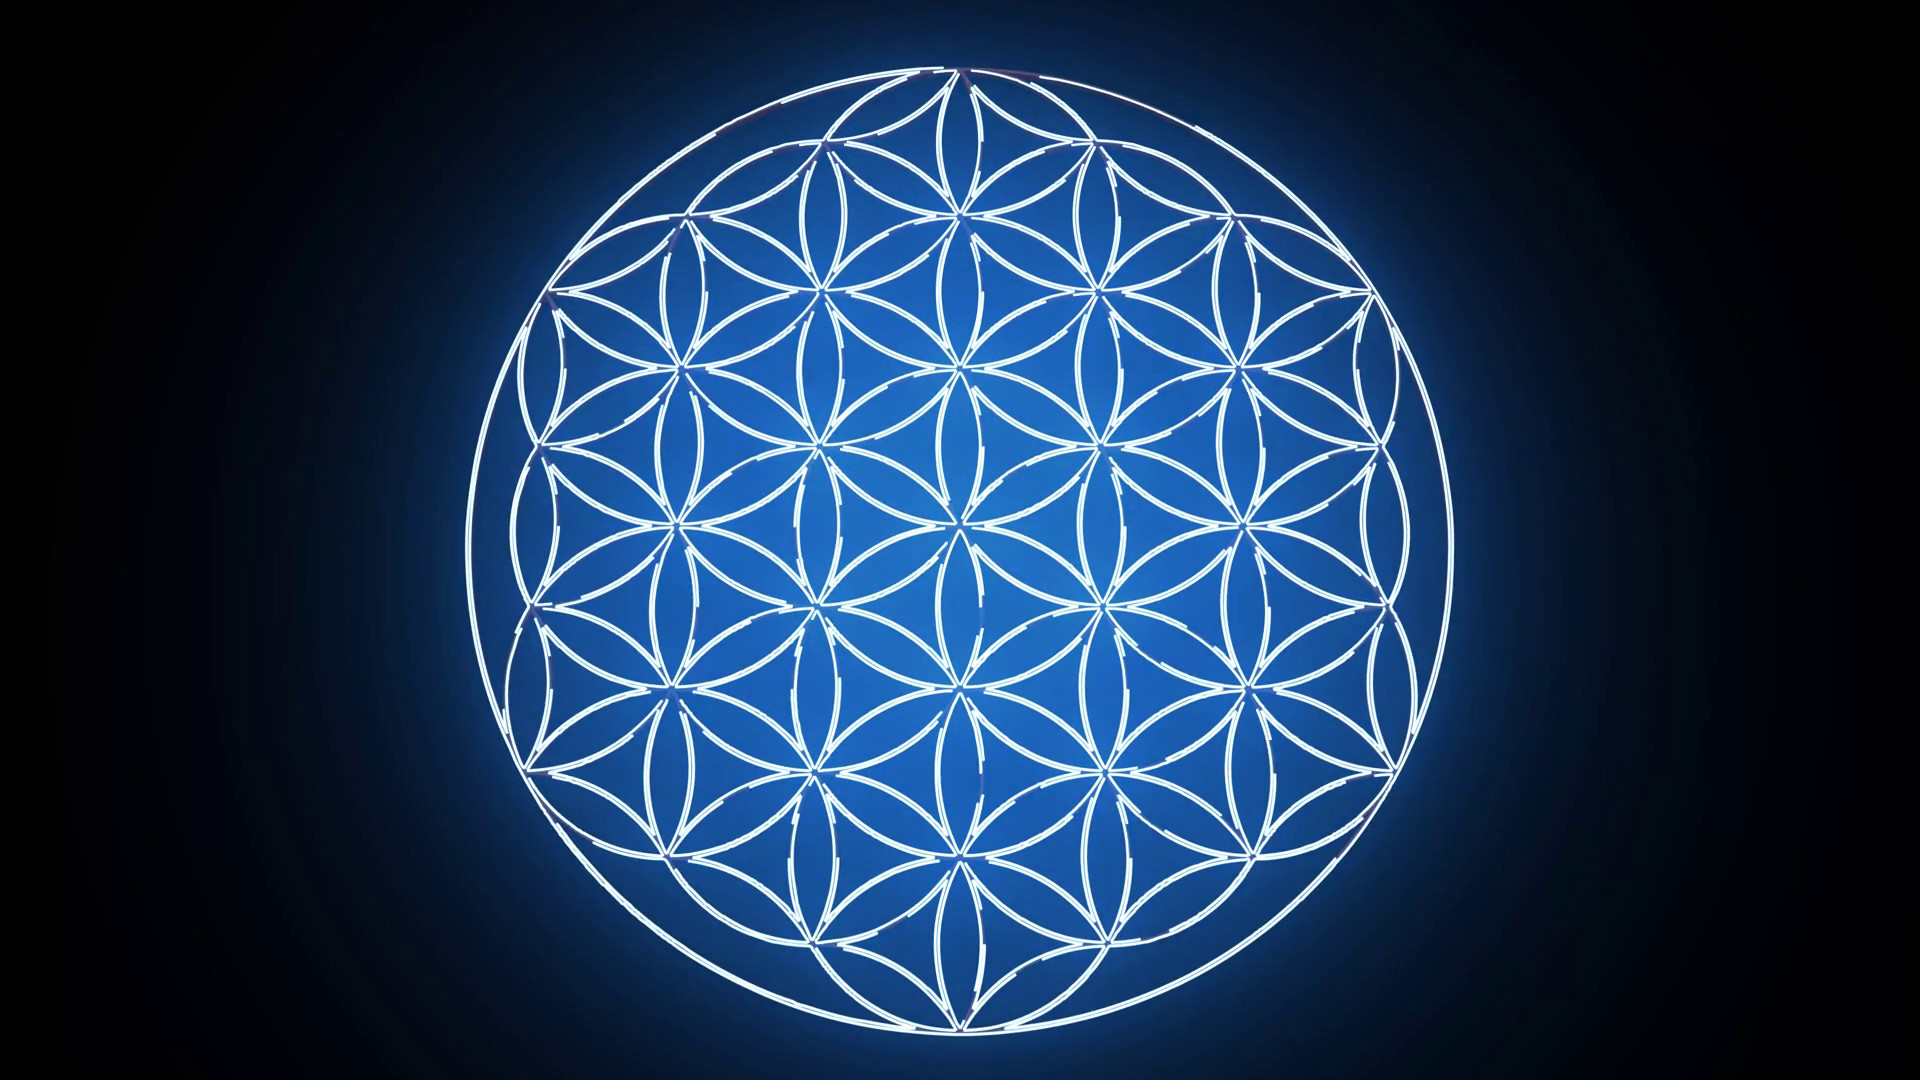 1920x1080 The Flower of Life Forming Sacred Geometry Symbol Motion Background -  VideoBlocks